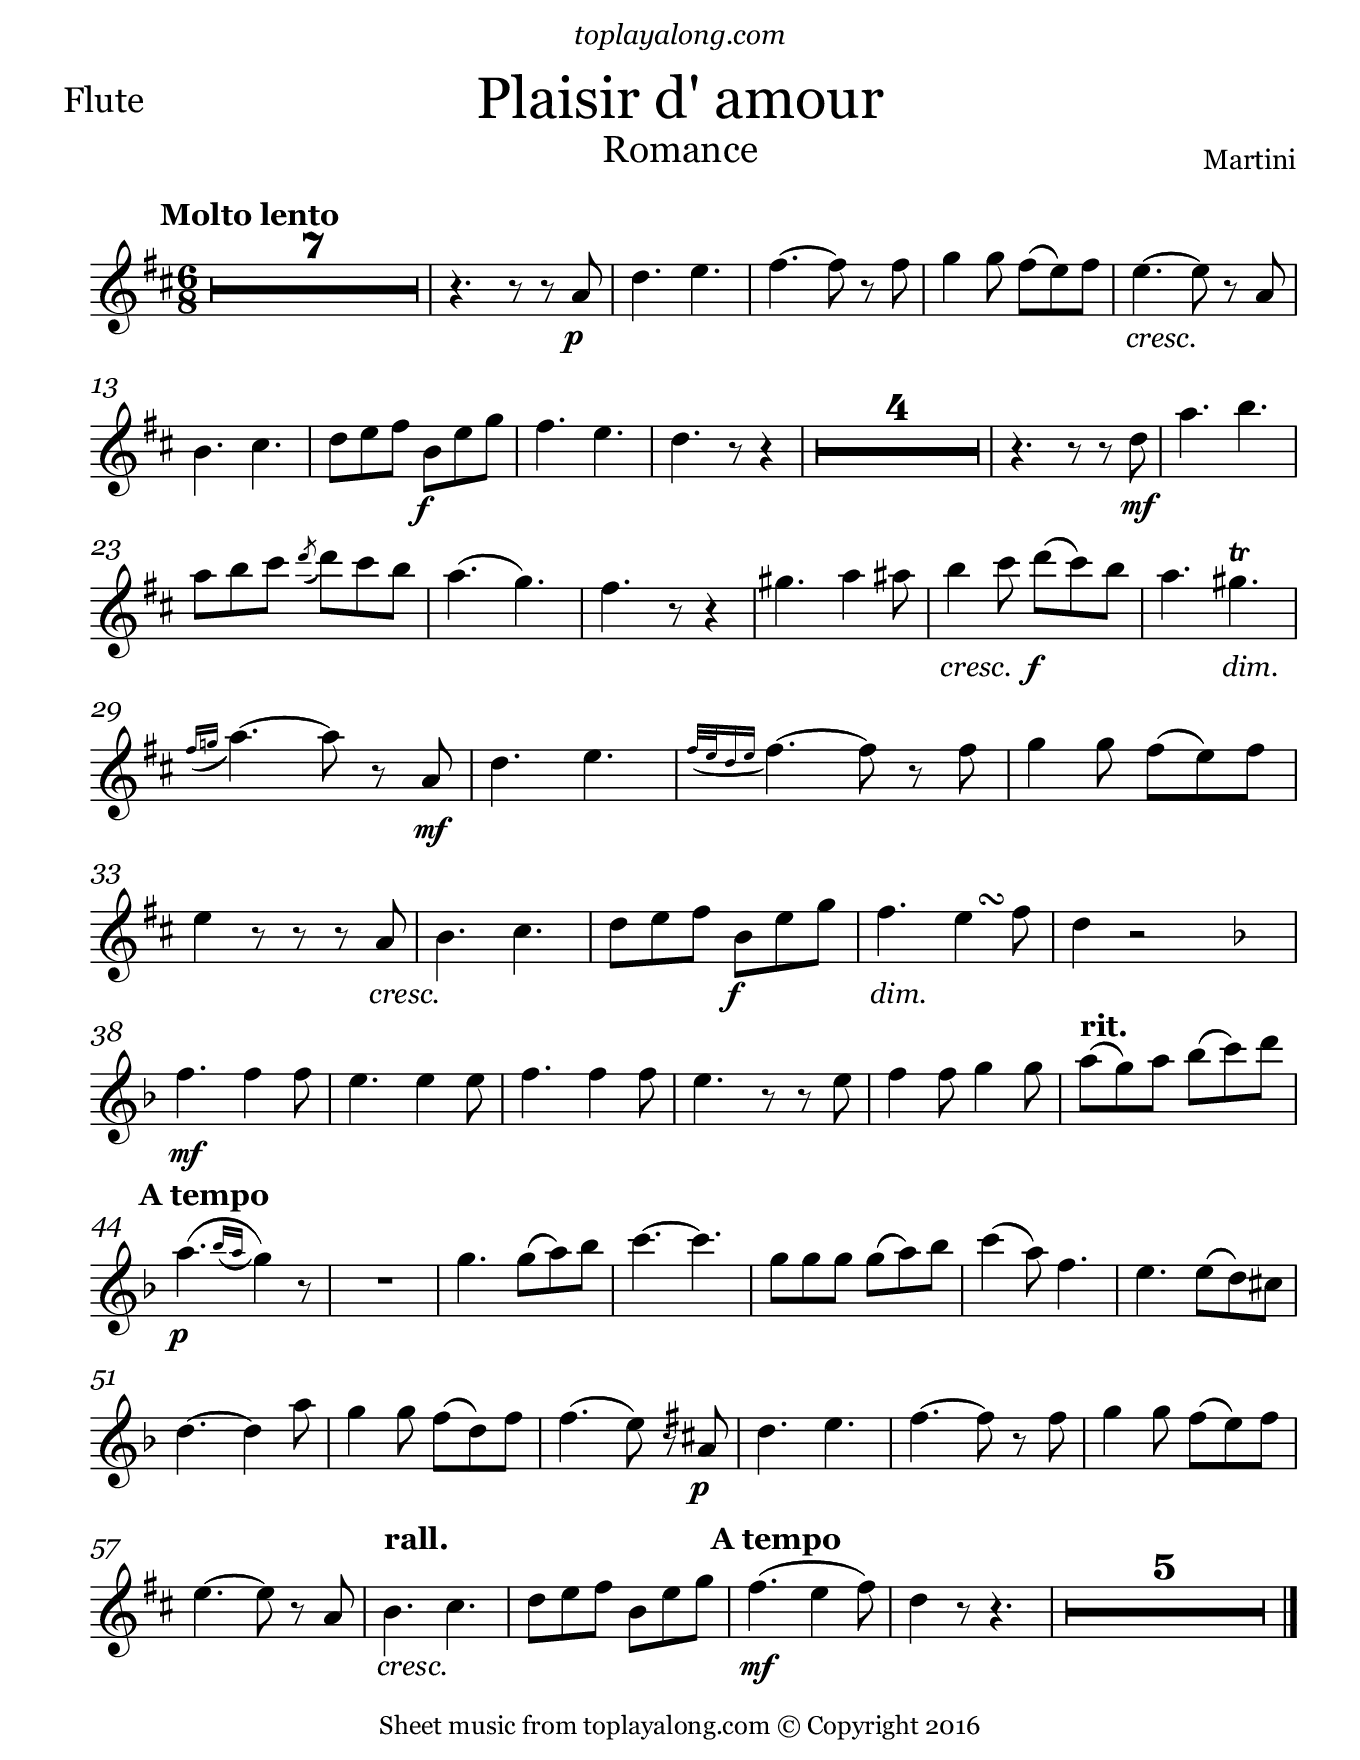 Plaisir d'amour by Martini. Sheet music for Flute, page 1.